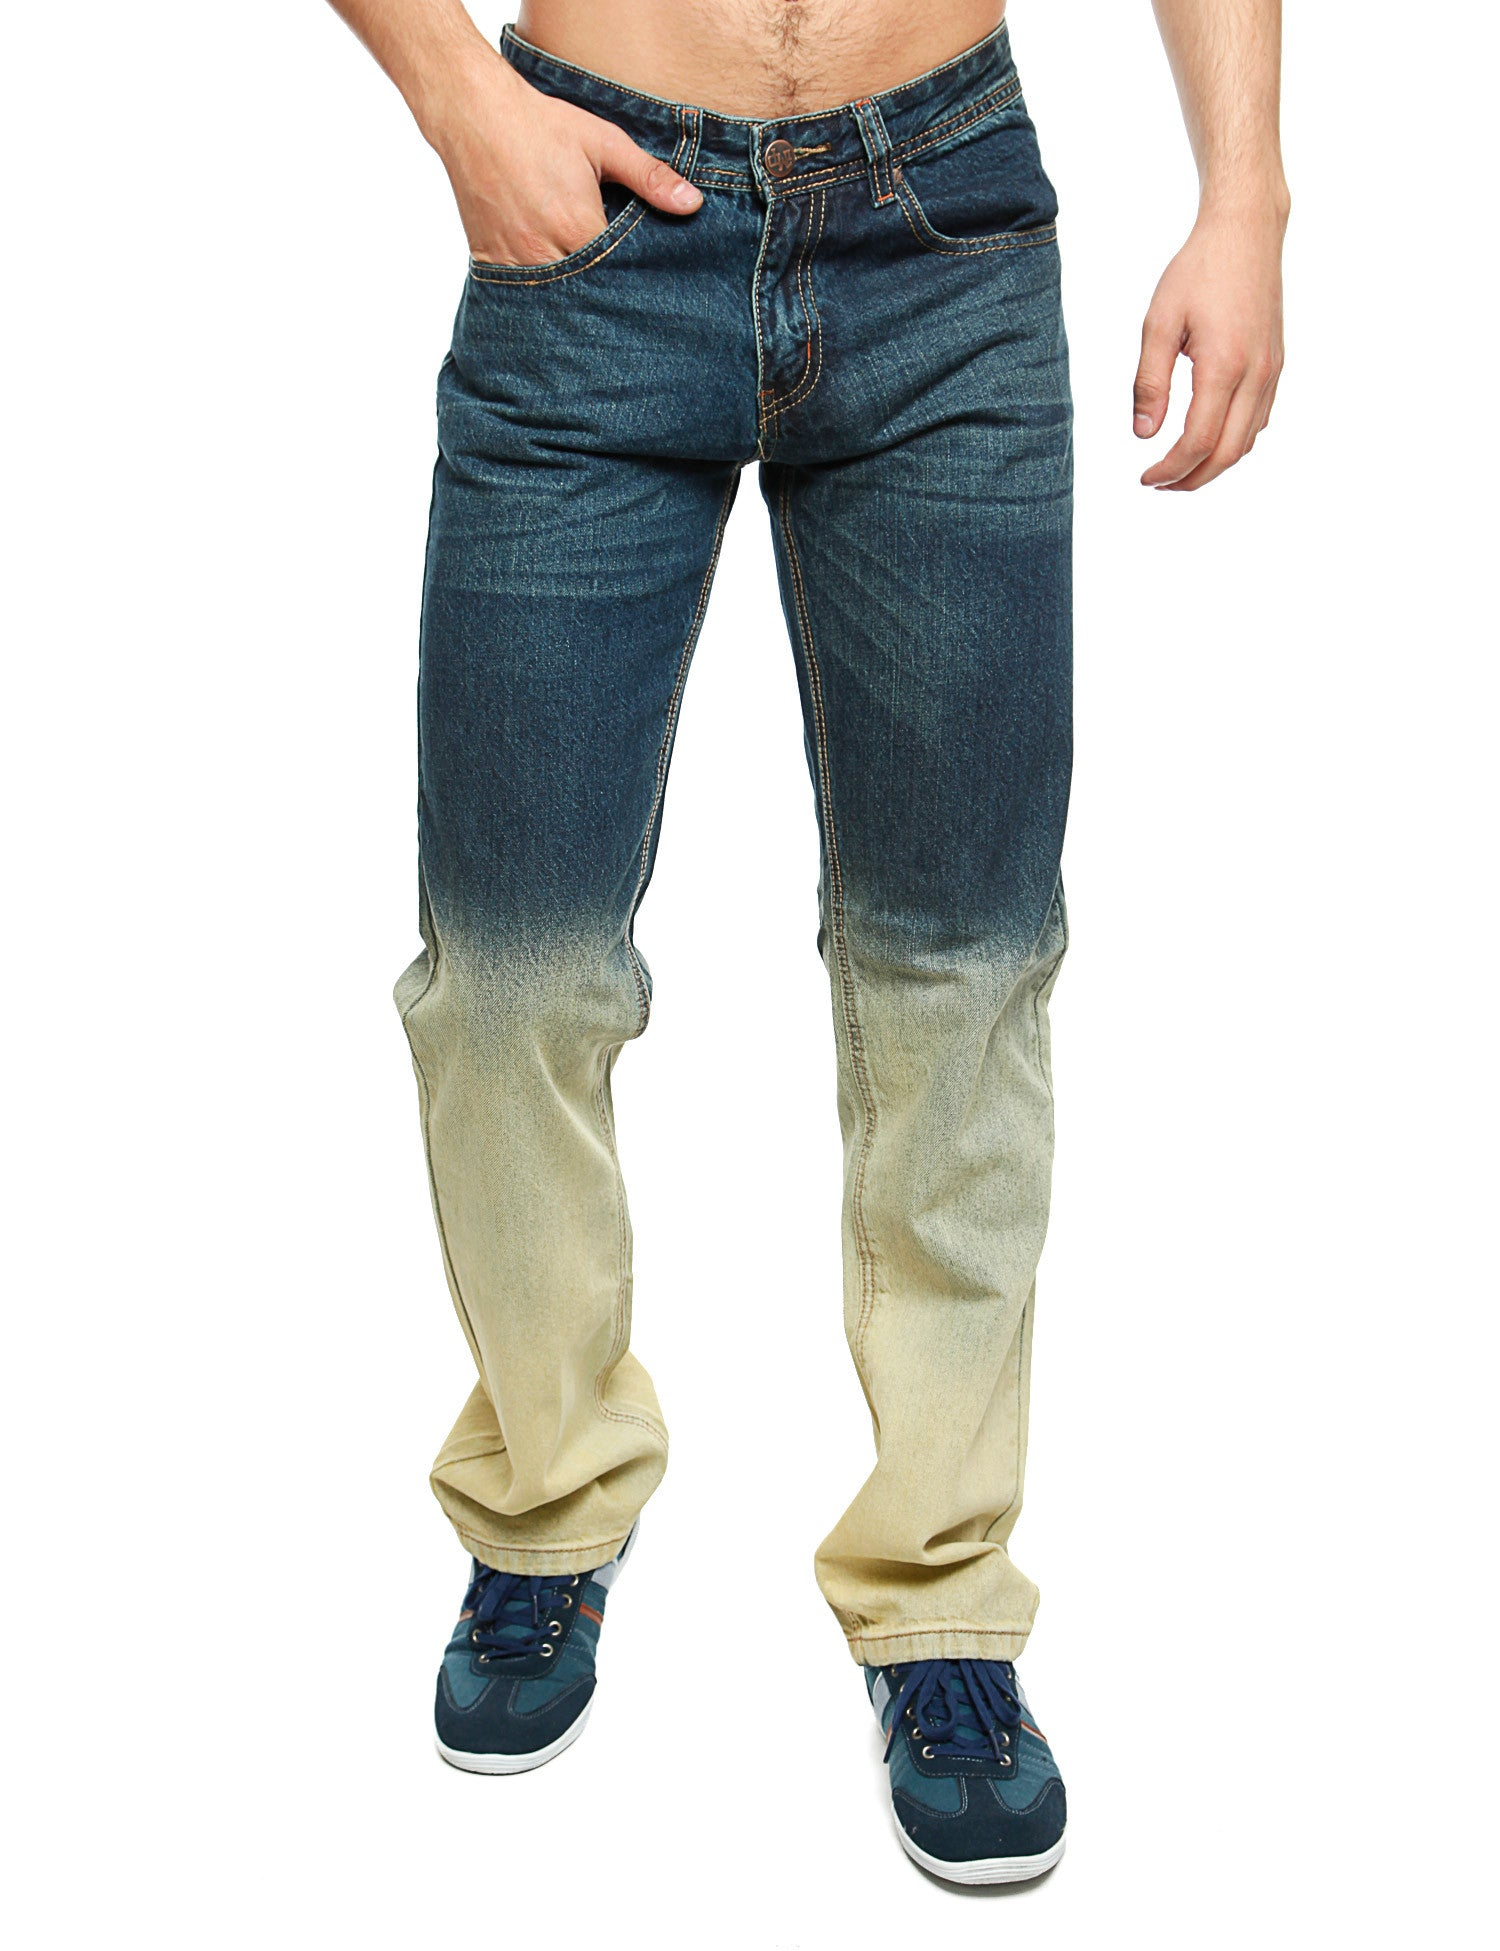 Imperious Denim Jeans DP526 Vintage  Green